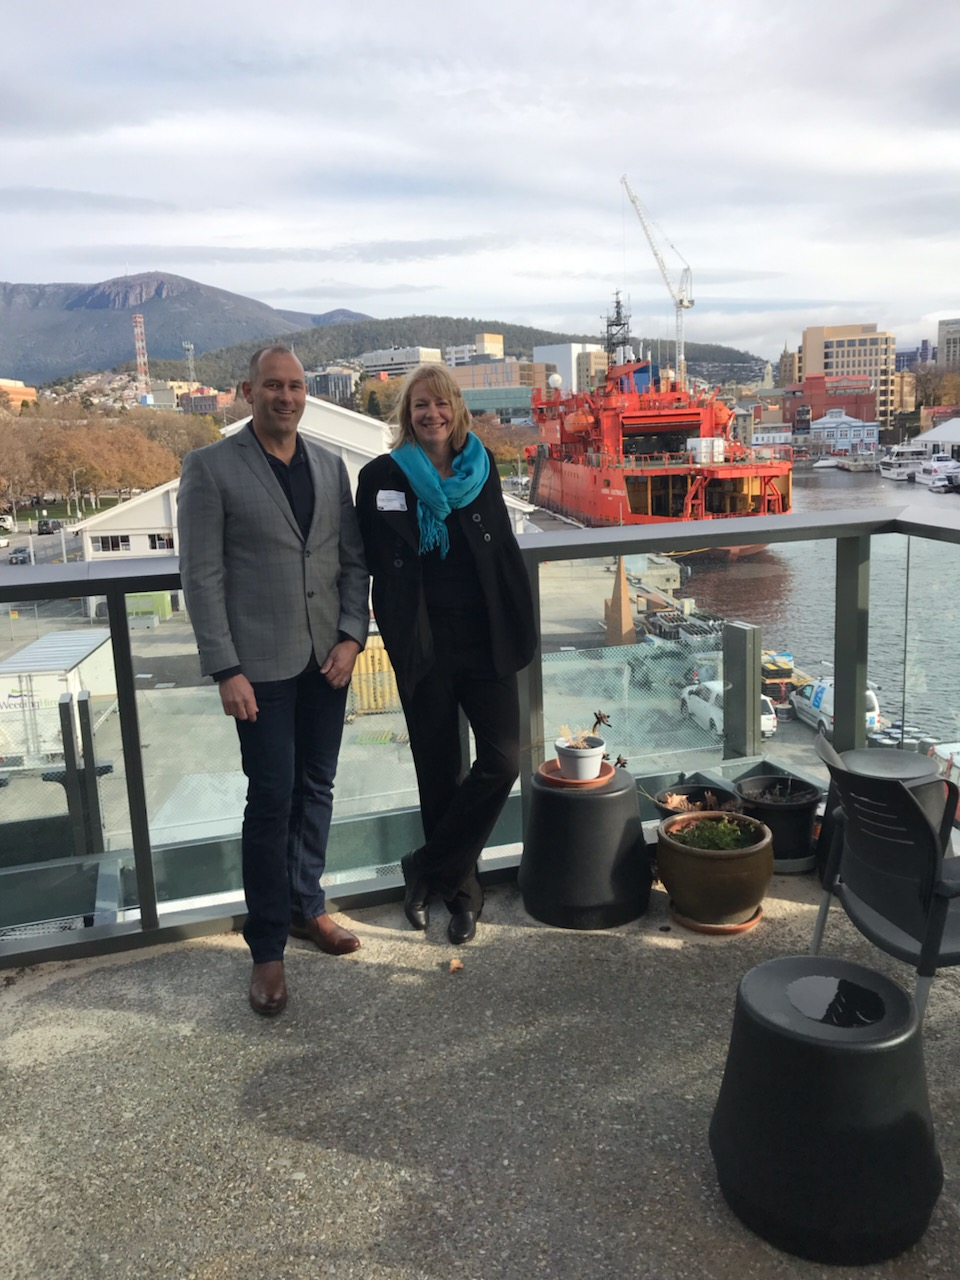 Shaun Deverson, Director at Lighthouse Road with The Antarctic Science Foundation's Executive Director, Chrissie Trousselot in Hobart.